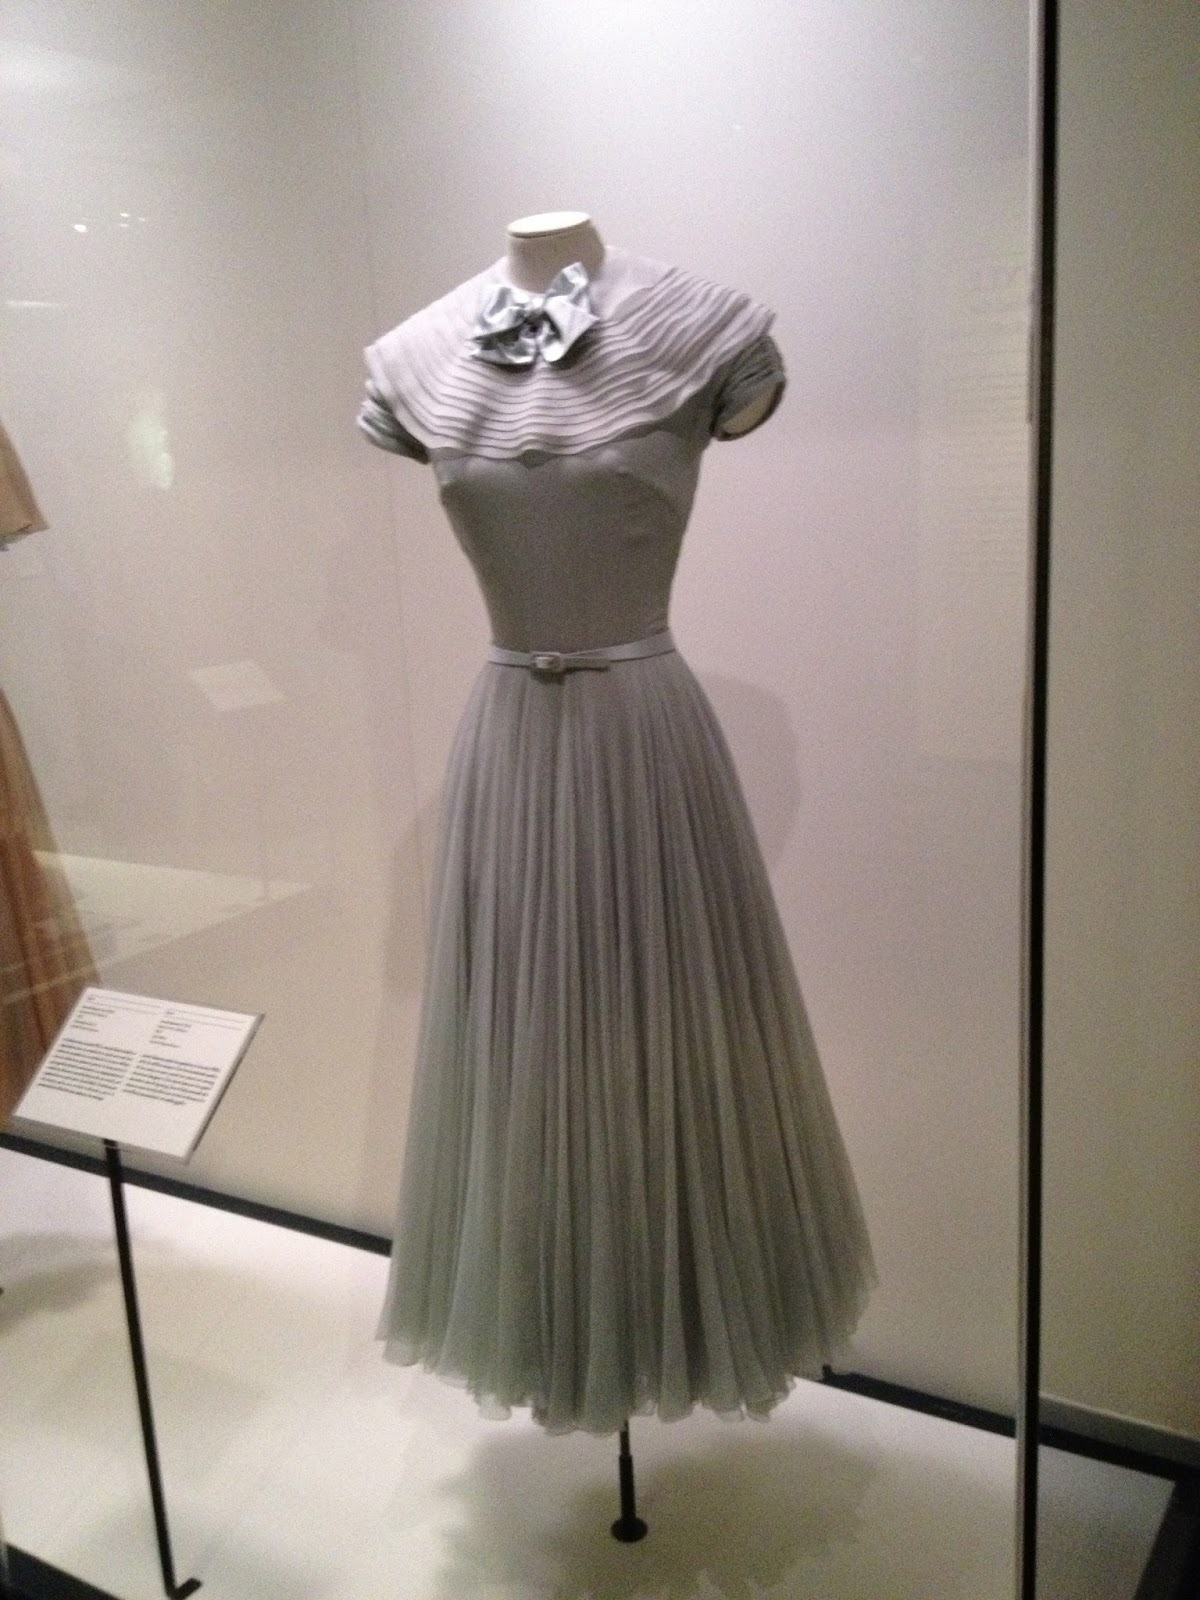 Grace Kelly Givenchy Outfit On Display At Mccord Museum